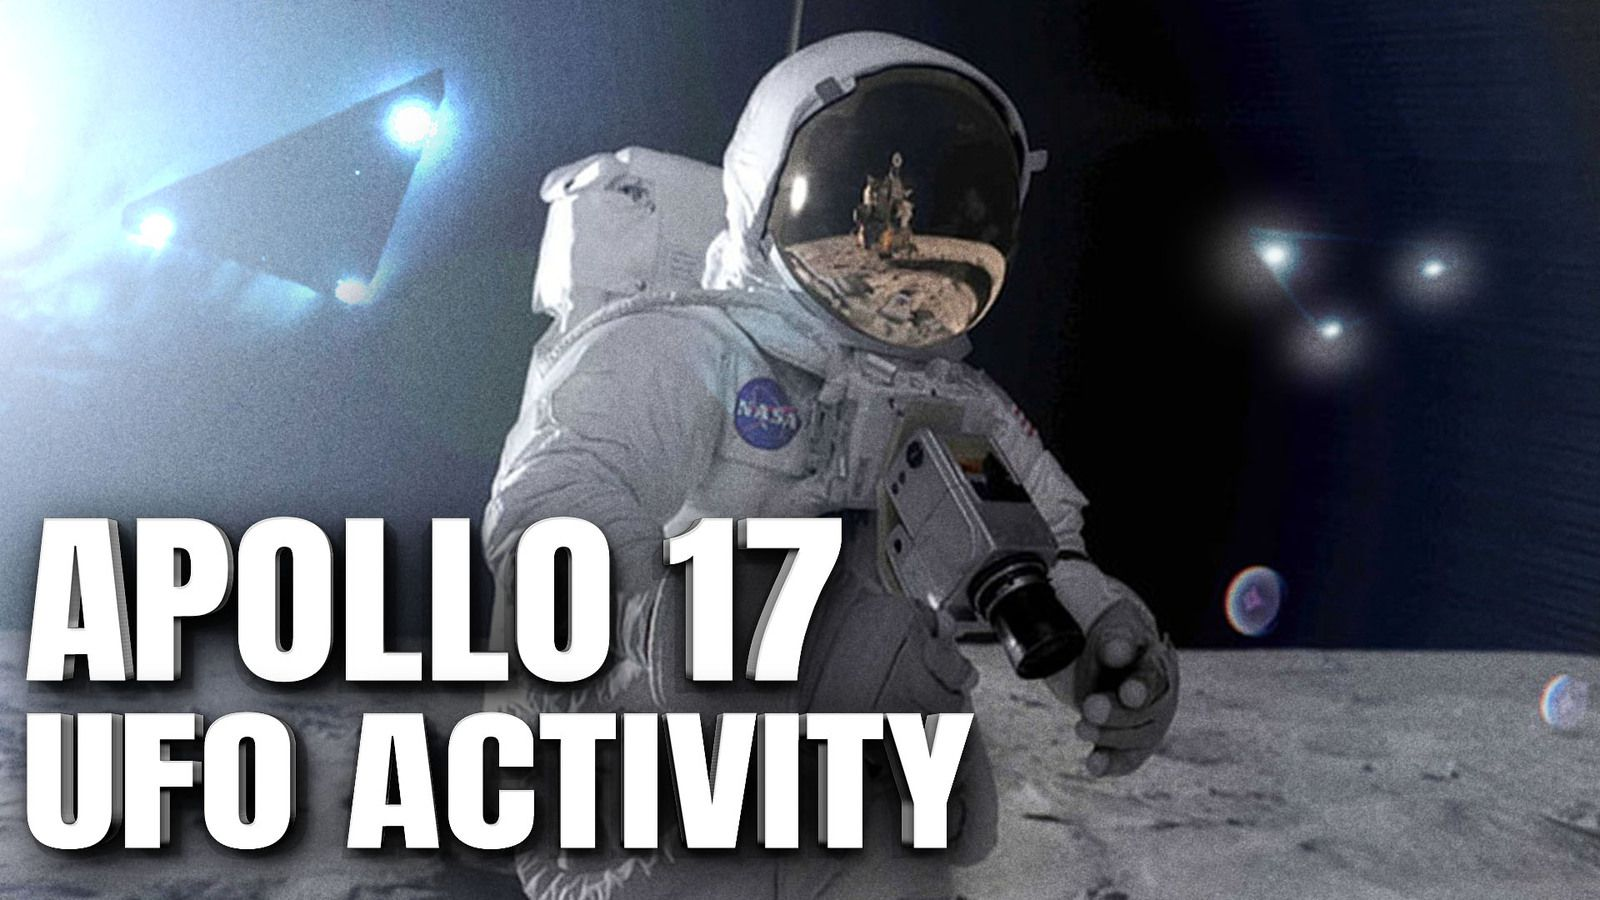 INTENSE UFO ACTIVITY NEAR APOLLO 17 Lunar Mission Revealed In Official NASA Images 👽